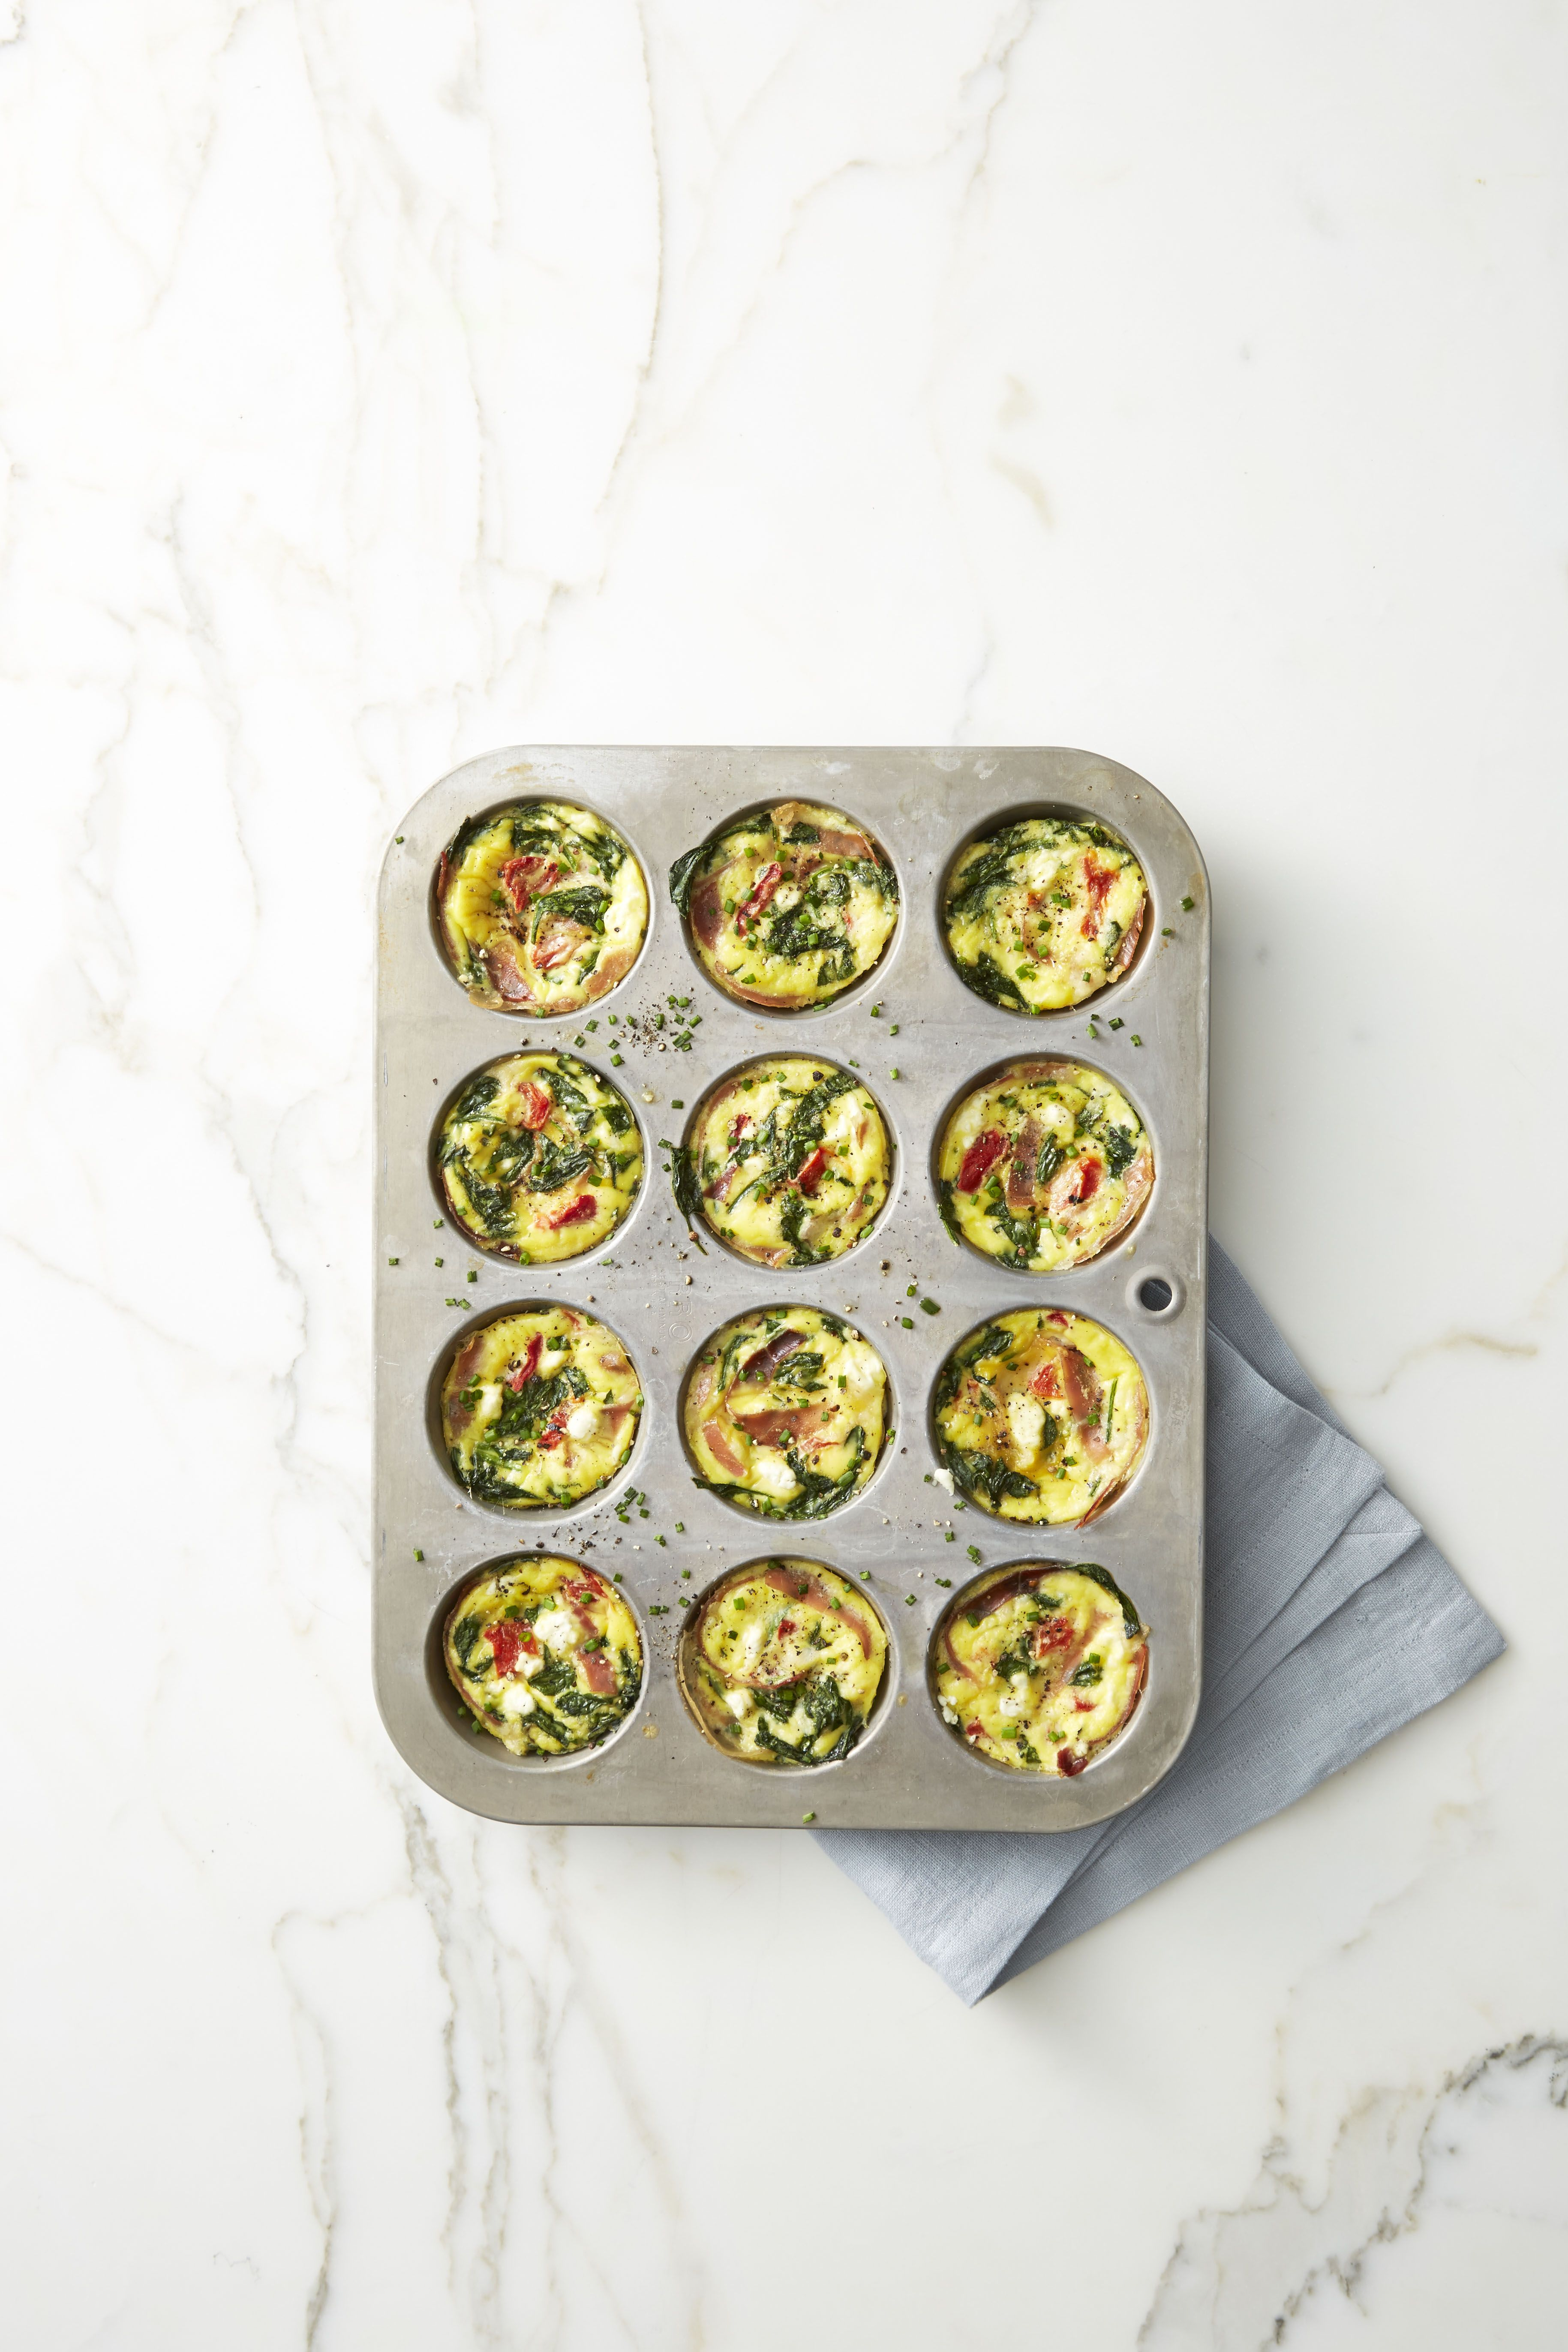 65 Easy Healthy Breakfast Ideas - Recipes for Quick and Healthy ...